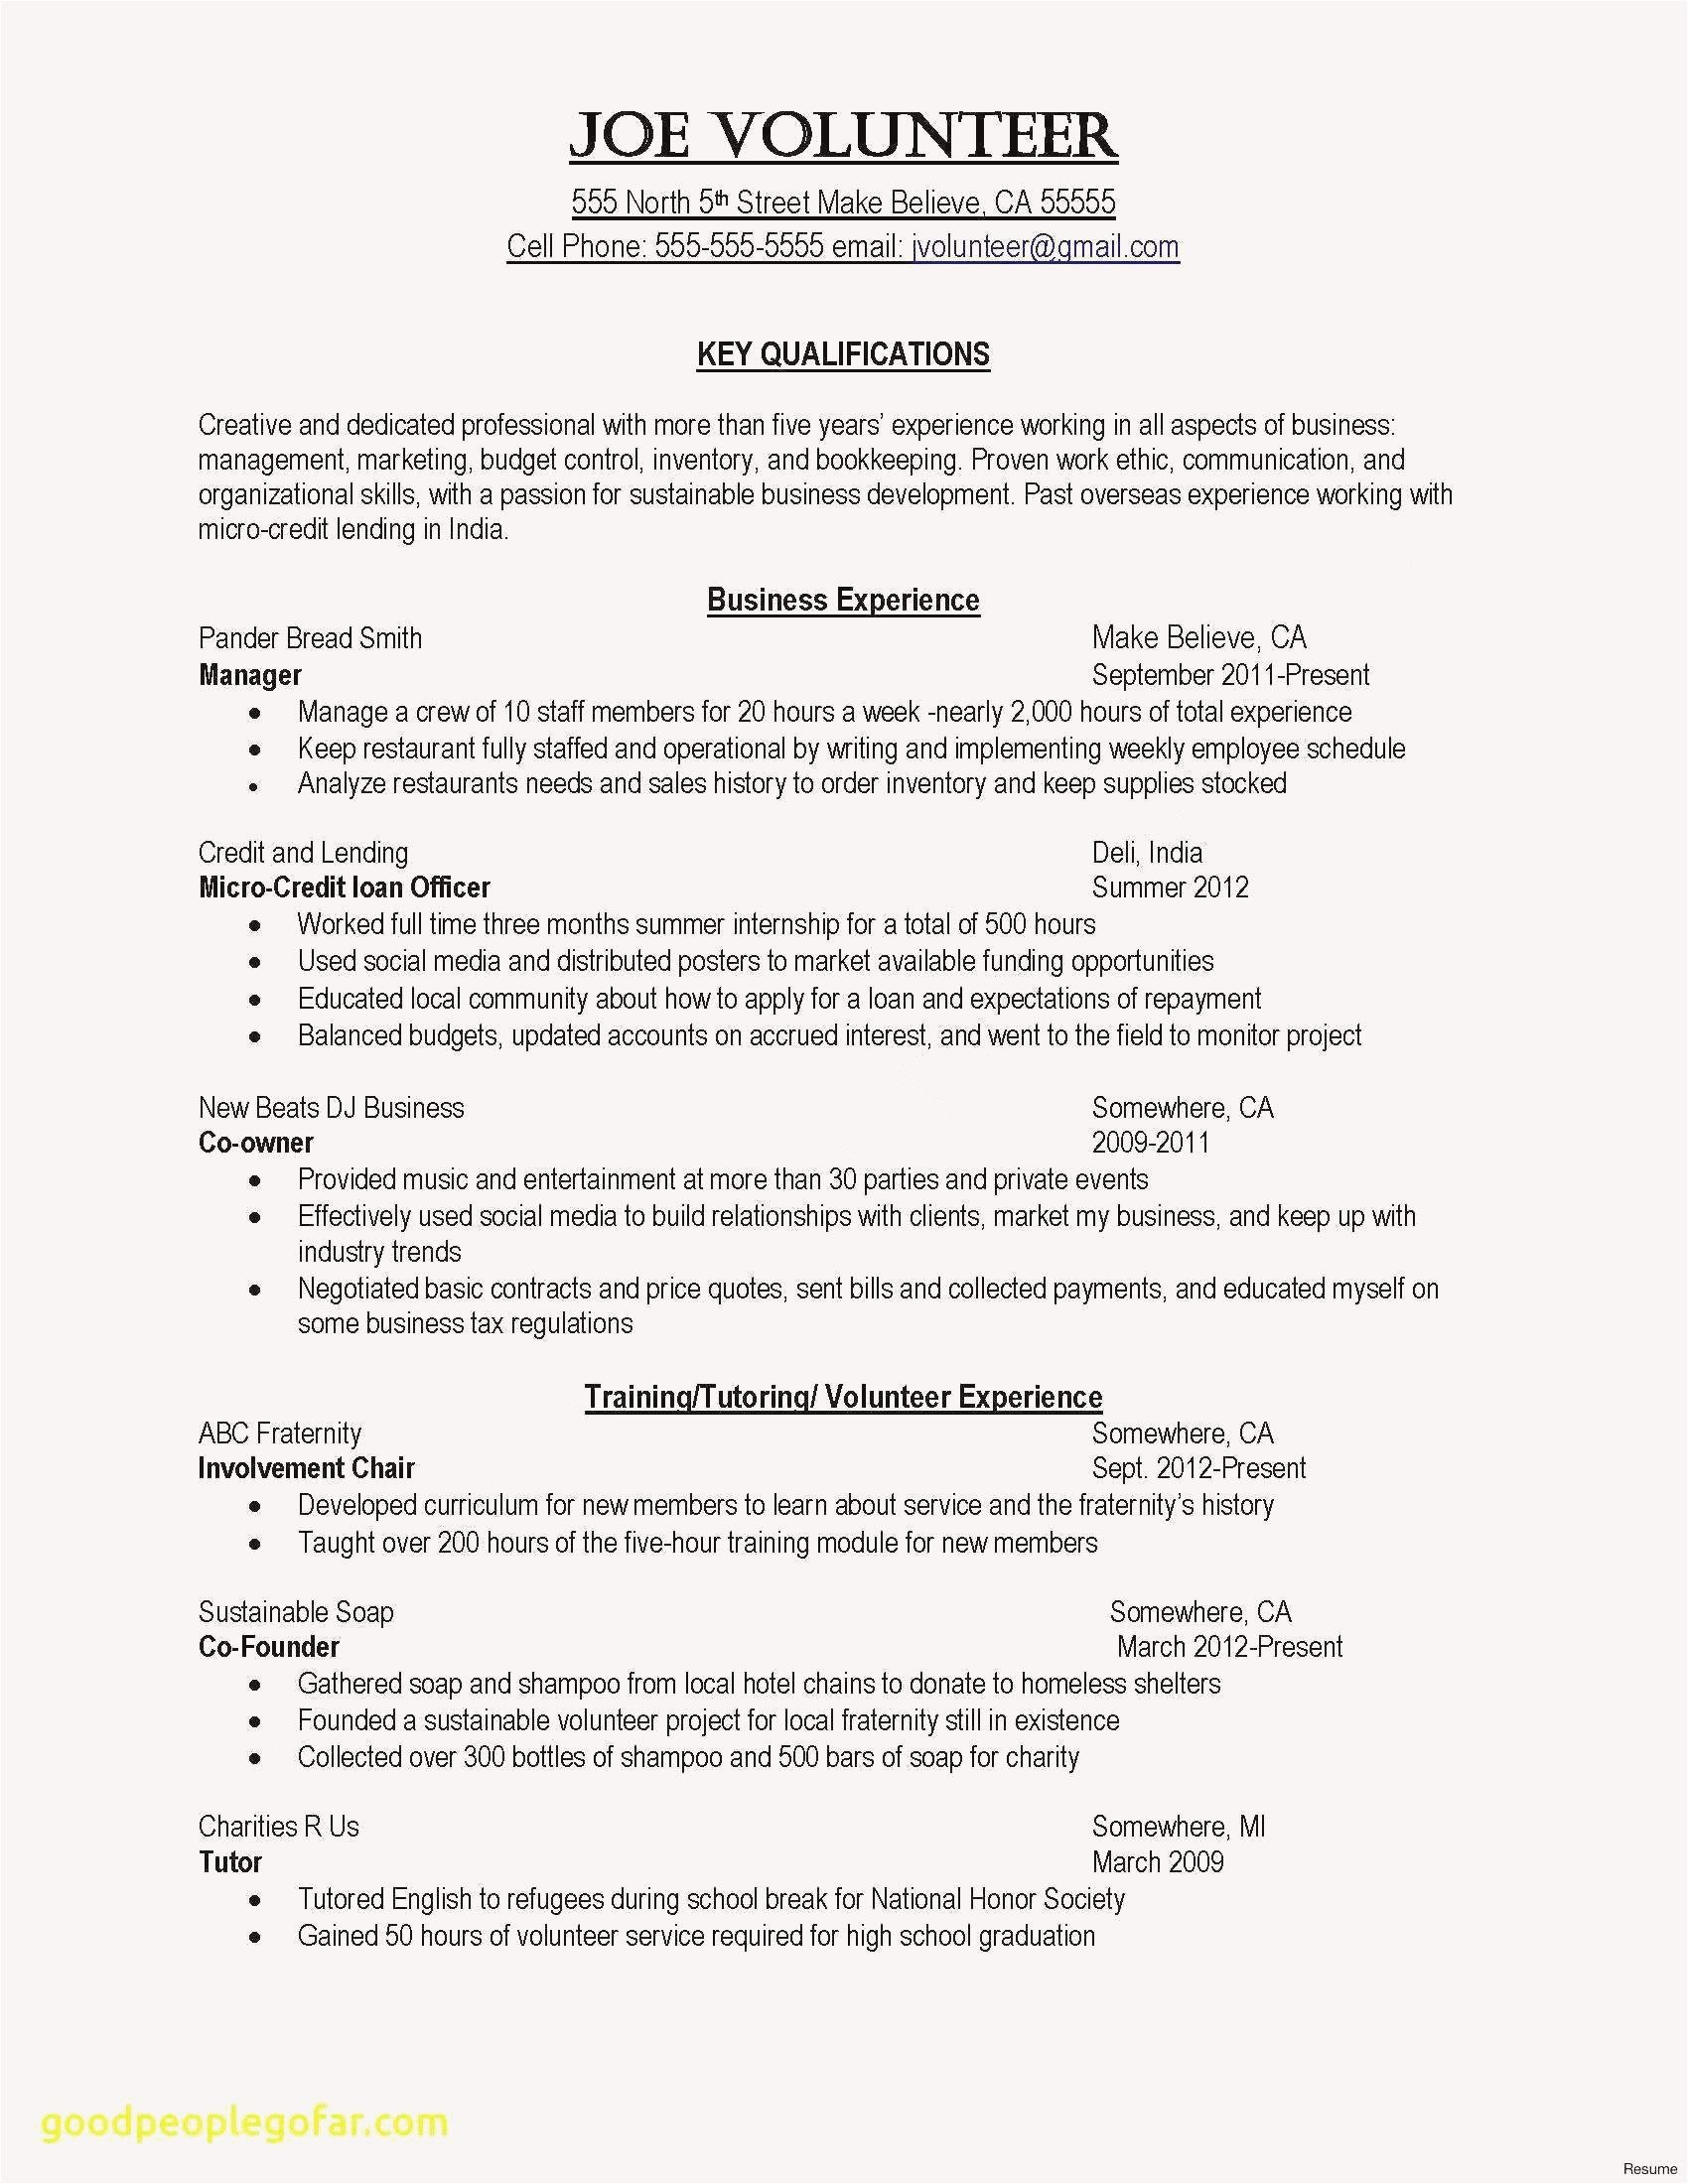 Current State Assessment Template New Personal Evaluation Examples Example A Great Resum In 2020 Project Manager Resume Resume Writing Services Cover Letter For Resume